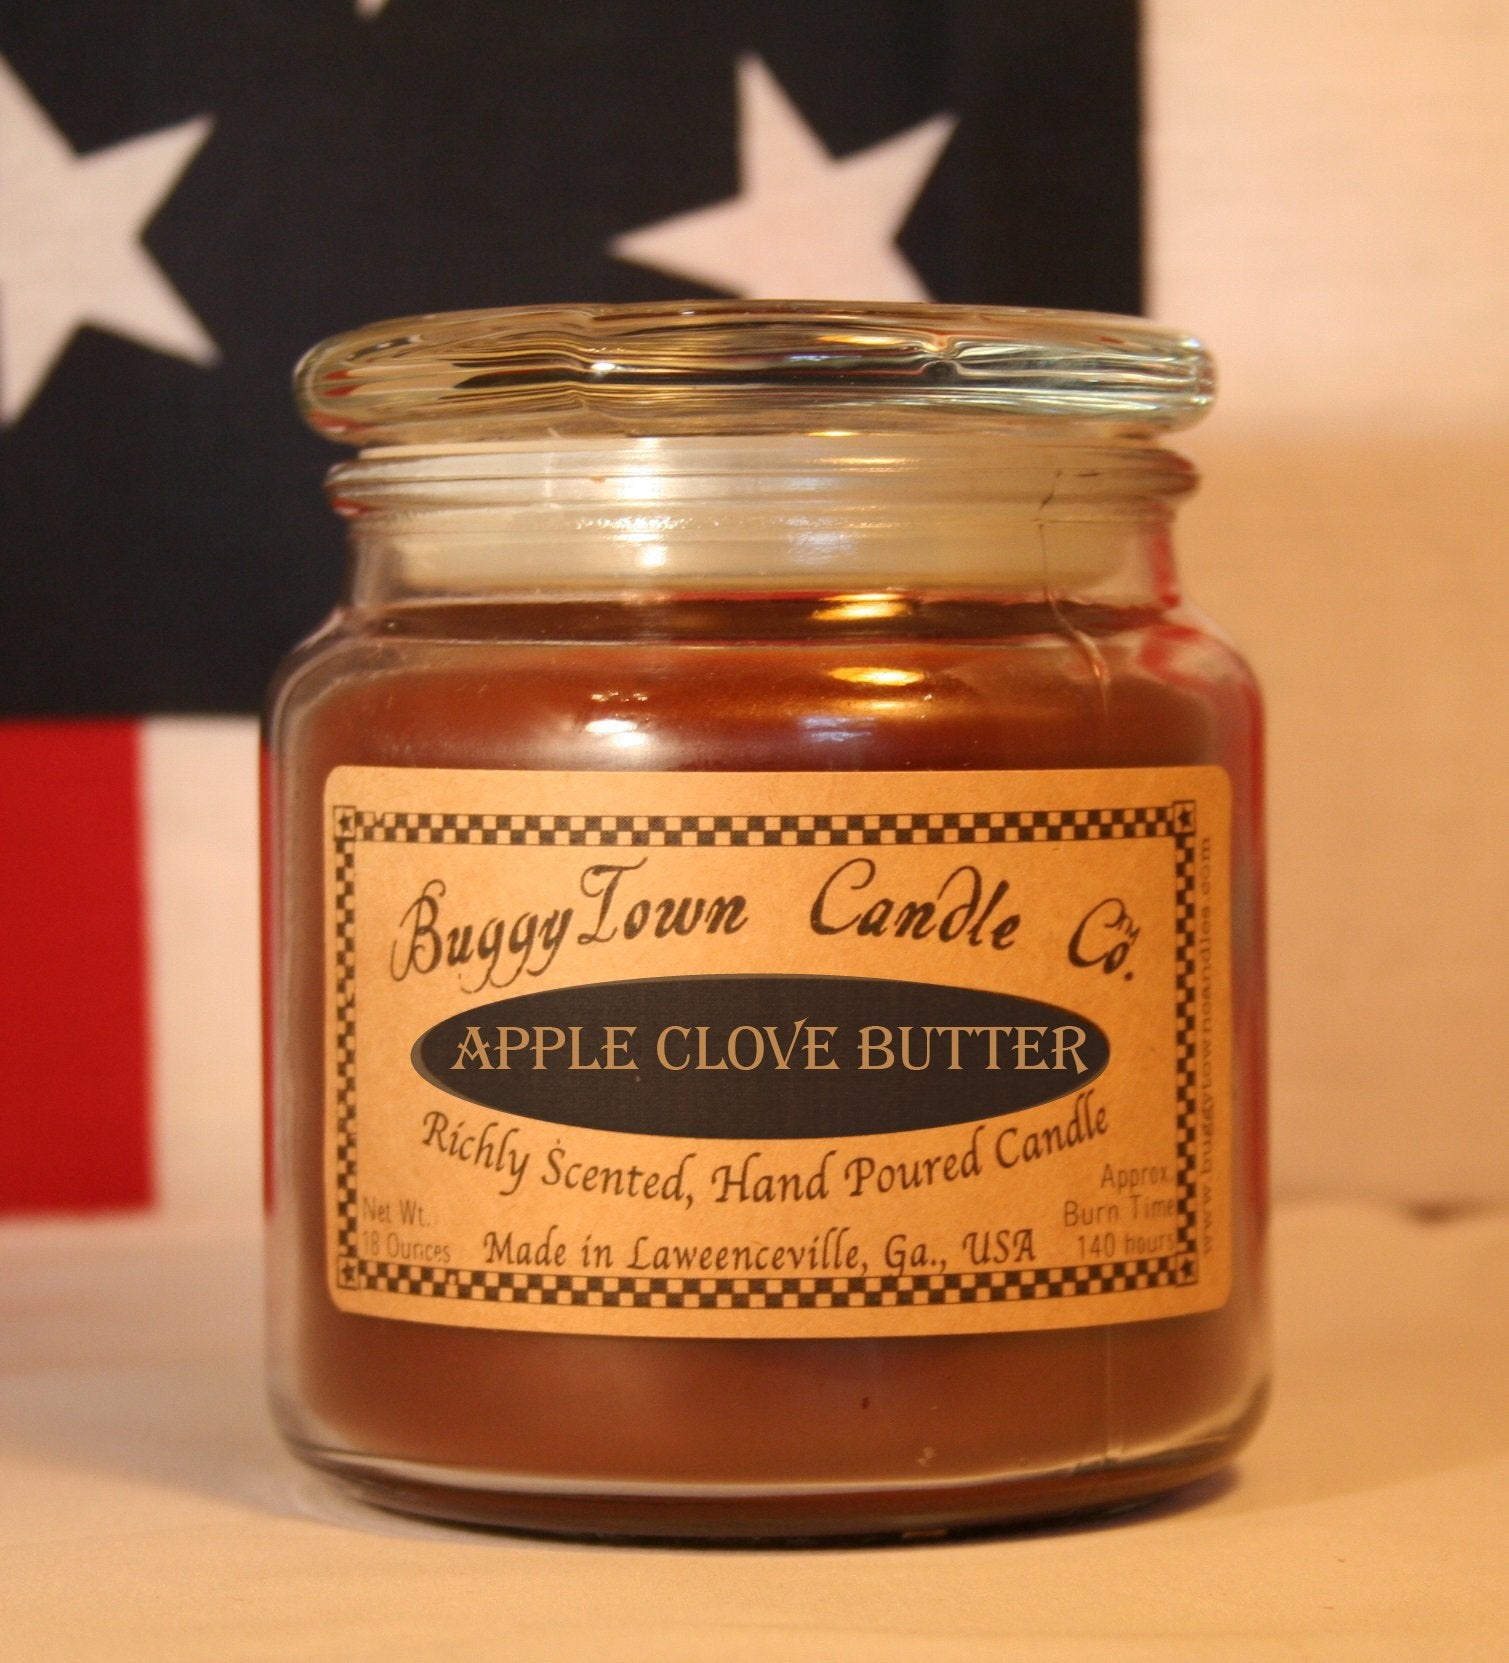 Apple Clove Butter Candles